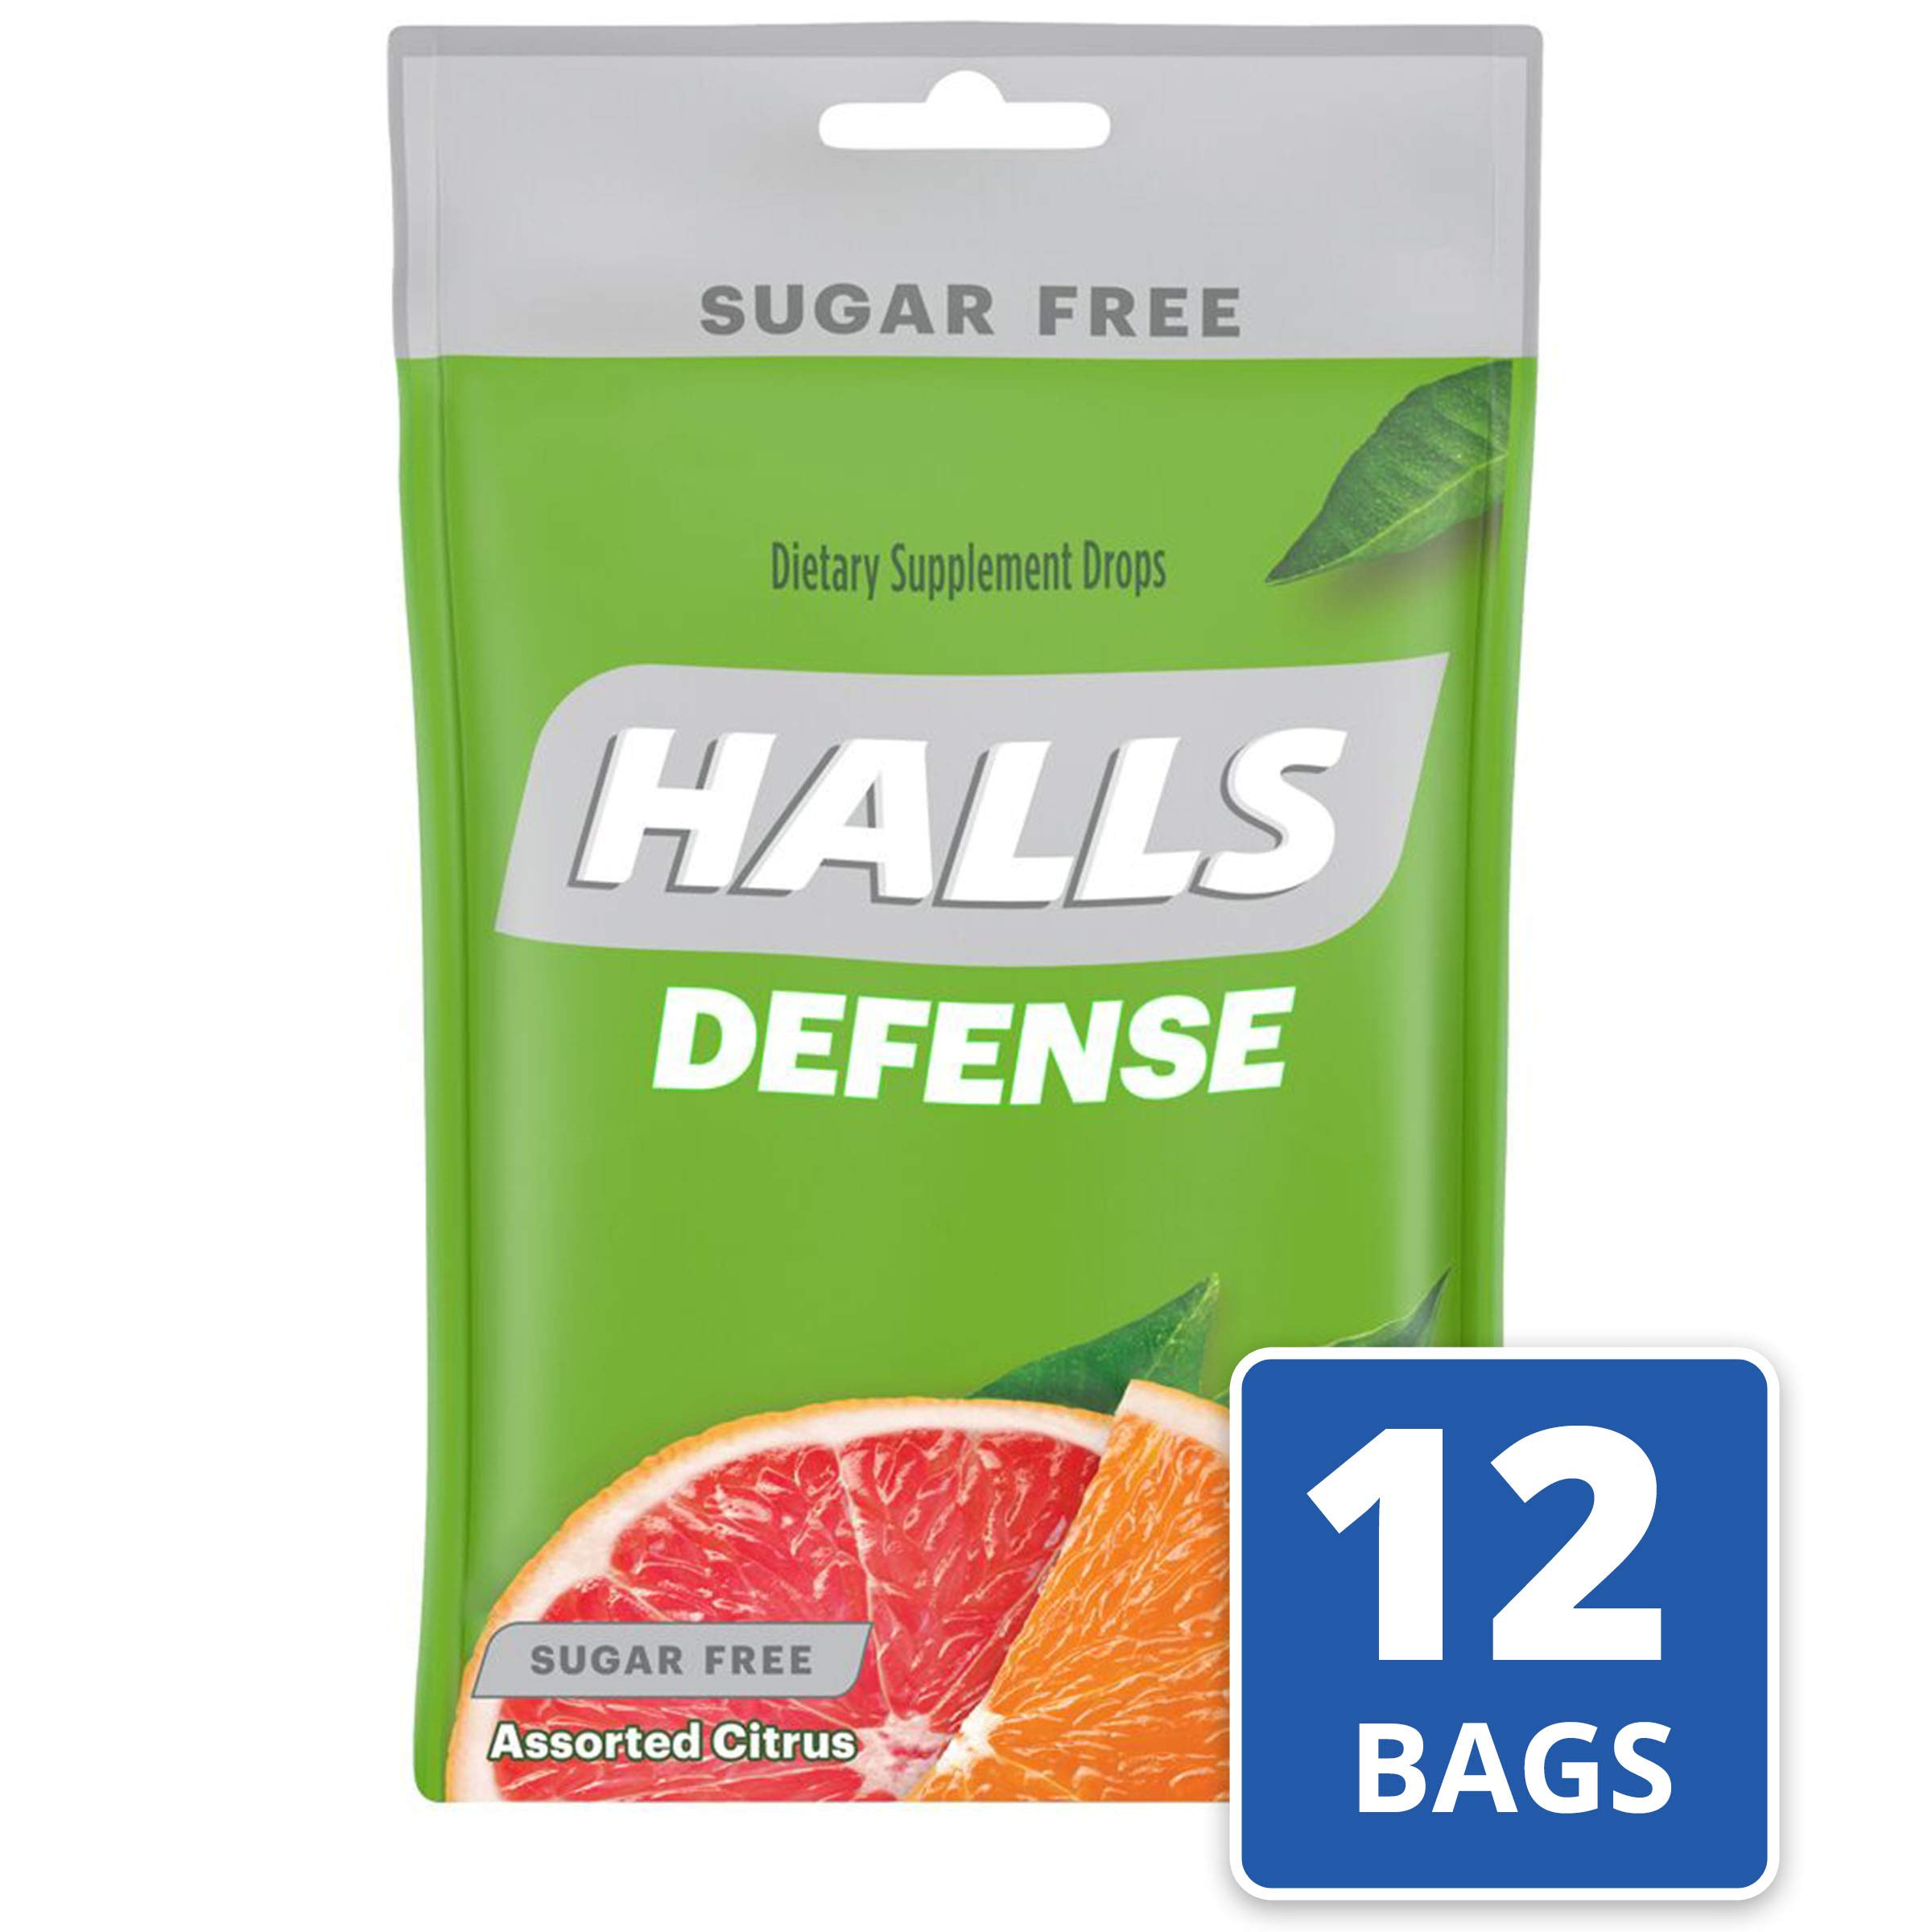 Halls Defense Citrus Sugar Free Vitamin C Drops - 300 Drops (12 bags of 25 drops) by Halls